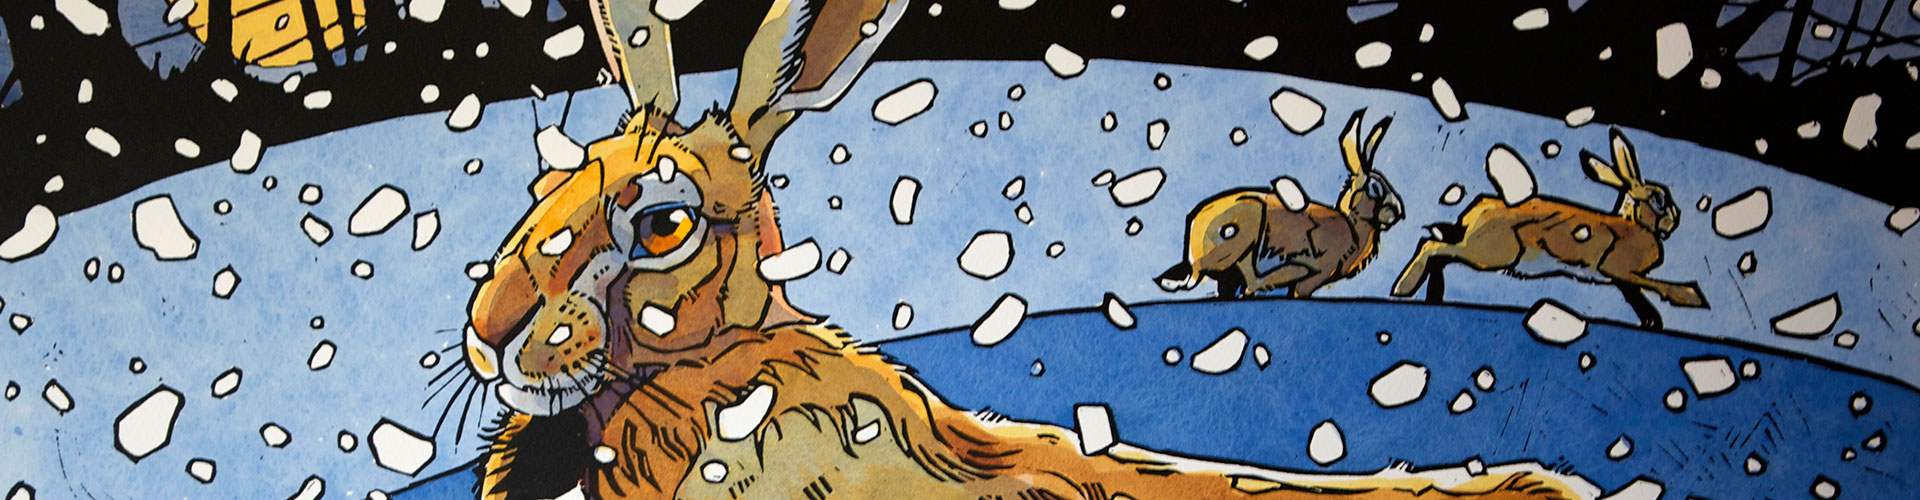 Winter Hare 3, Greeting Card by Andrew Haslen - Featured on Desktop Devices